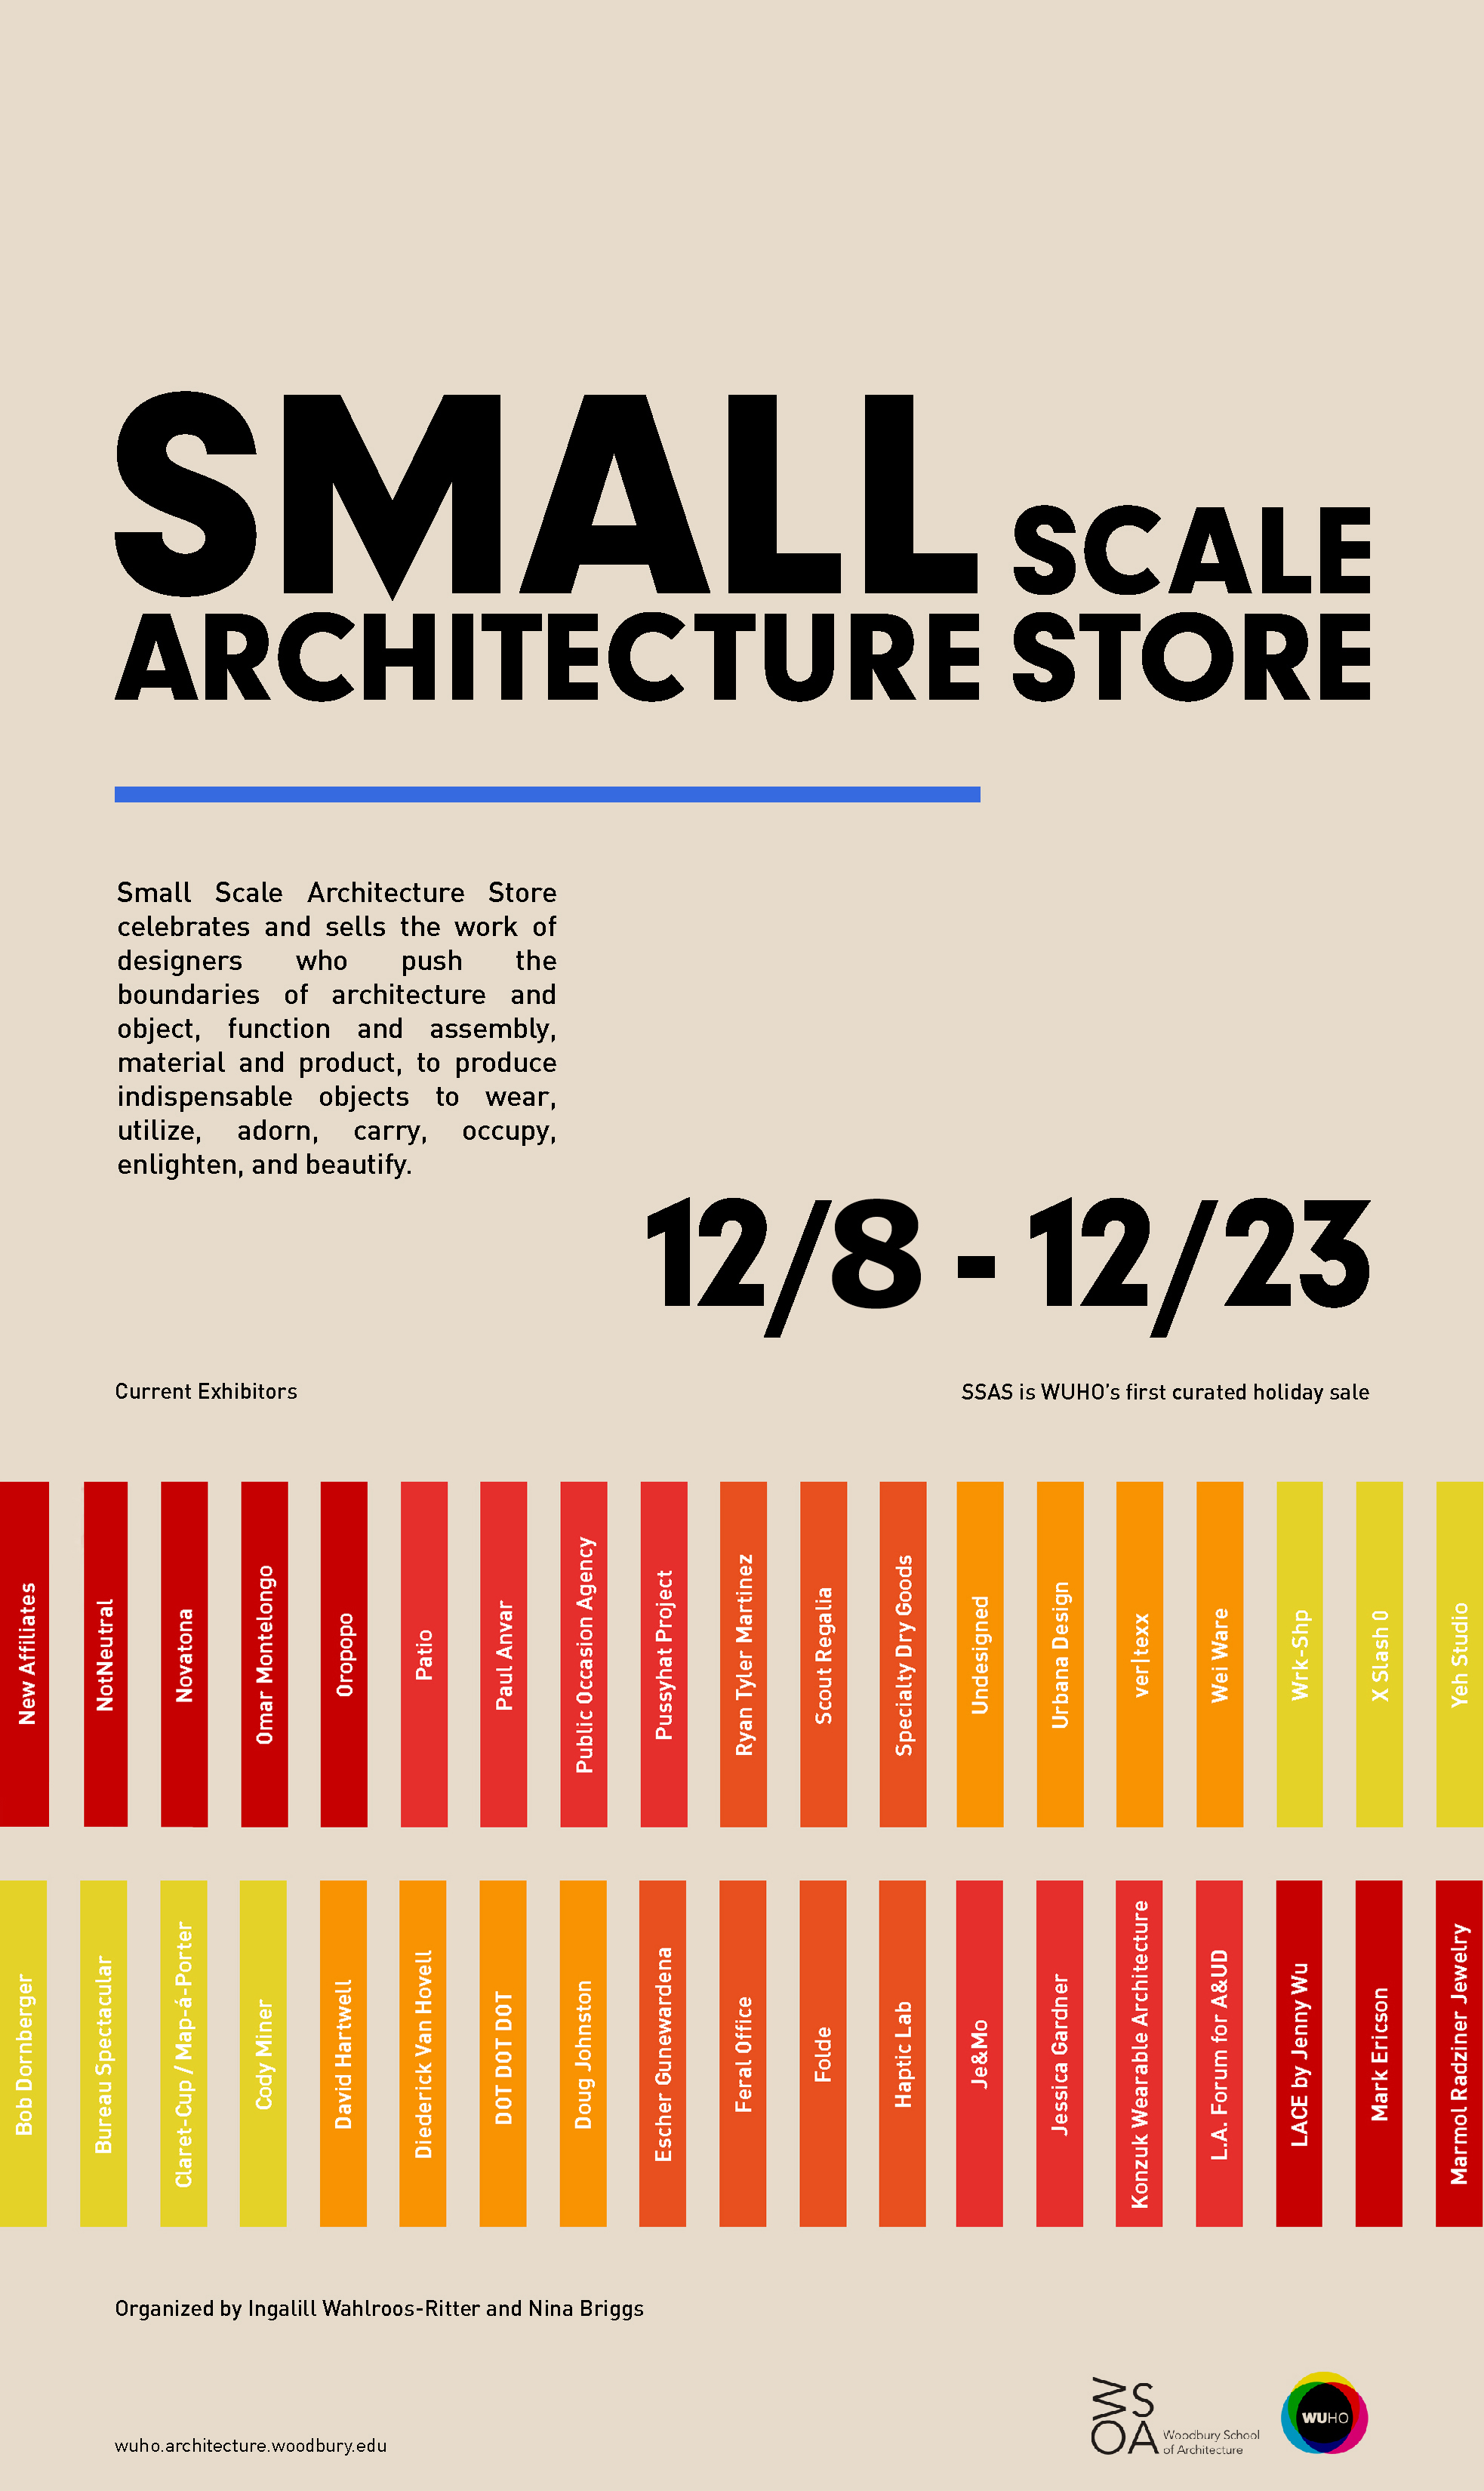 MAP-A-PORTER - At the SMALL SCALE ARCHITECTURE STORE!We are excited to announce our participation in WUHO Gallery's first annual holiday sale SSAS: Small Scale Architecture Store.We will be showing our soft goods line Map-á-Porter.SSAS celebrates and sells the work of designers who push the boundaries of function and assembly, material and product, to produce indispensable objects to wear, utilize, adorn, carry, occupy, enlighten, and beautify. Organized by Nina Briggs and Ingalill Wahlroos-Ritter, SSAS features the work of 40 designers who are exploring the boundaries of architecture and object. SSAS will run through December 23, 2018.when: December 8 - December 23, 2018hours: Thursday 1:00pm-8:00pm, Friday-Sunday 1:00pm-6:00pmwhere: WUHO Gallery. 6518 Hollywood Blvd. Los Angeles. 90028Opening Reception: Saturday, December 8, 2018 at 6:00pm